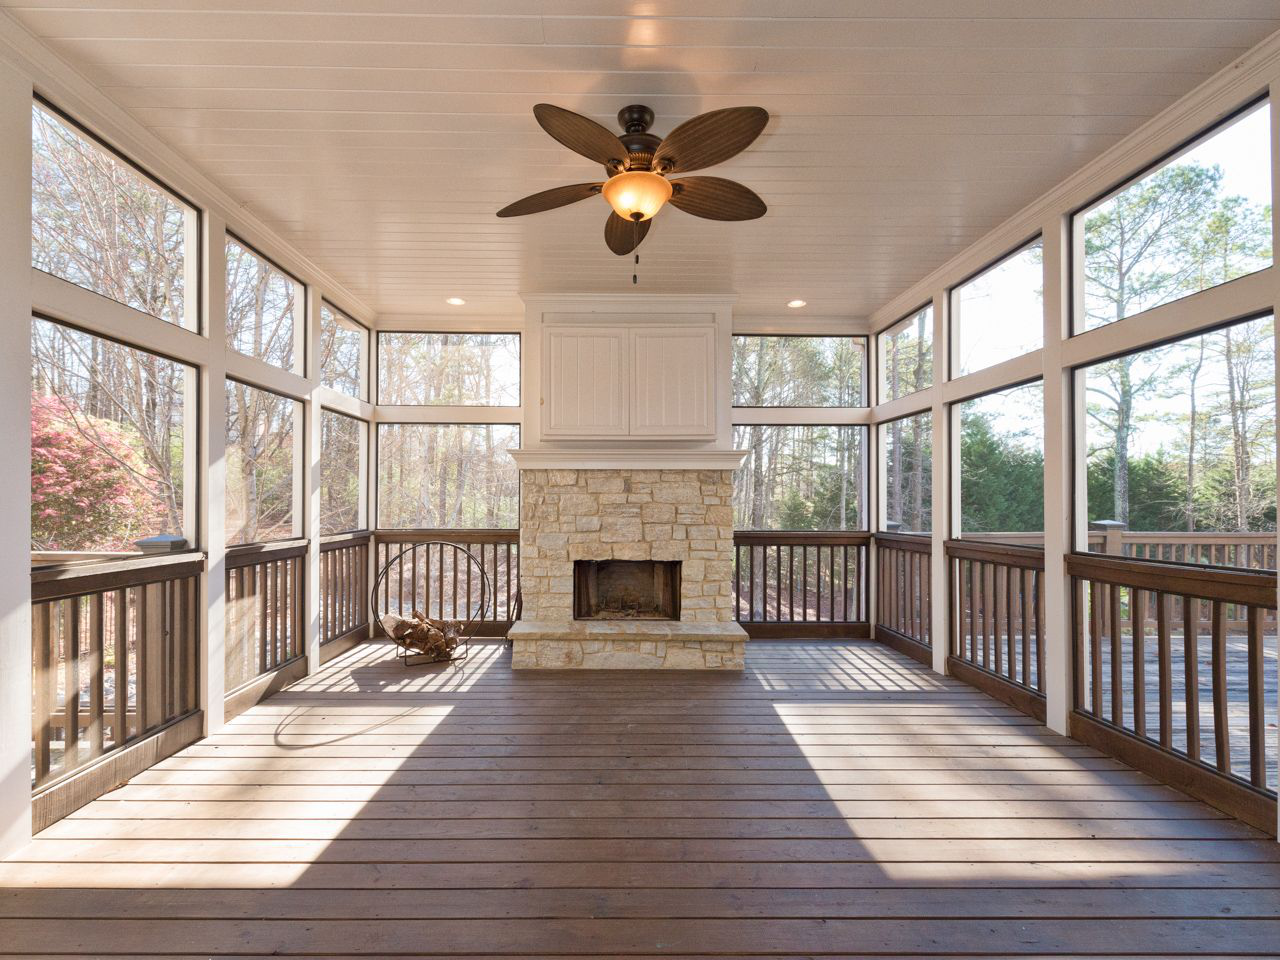 More Ideas Below Cheap Screened In Porch And Flooring Doors Lighting Farmhouse Bar Exterior Modern Scr Screened Porch Designs Porch Design Porch Fireplace